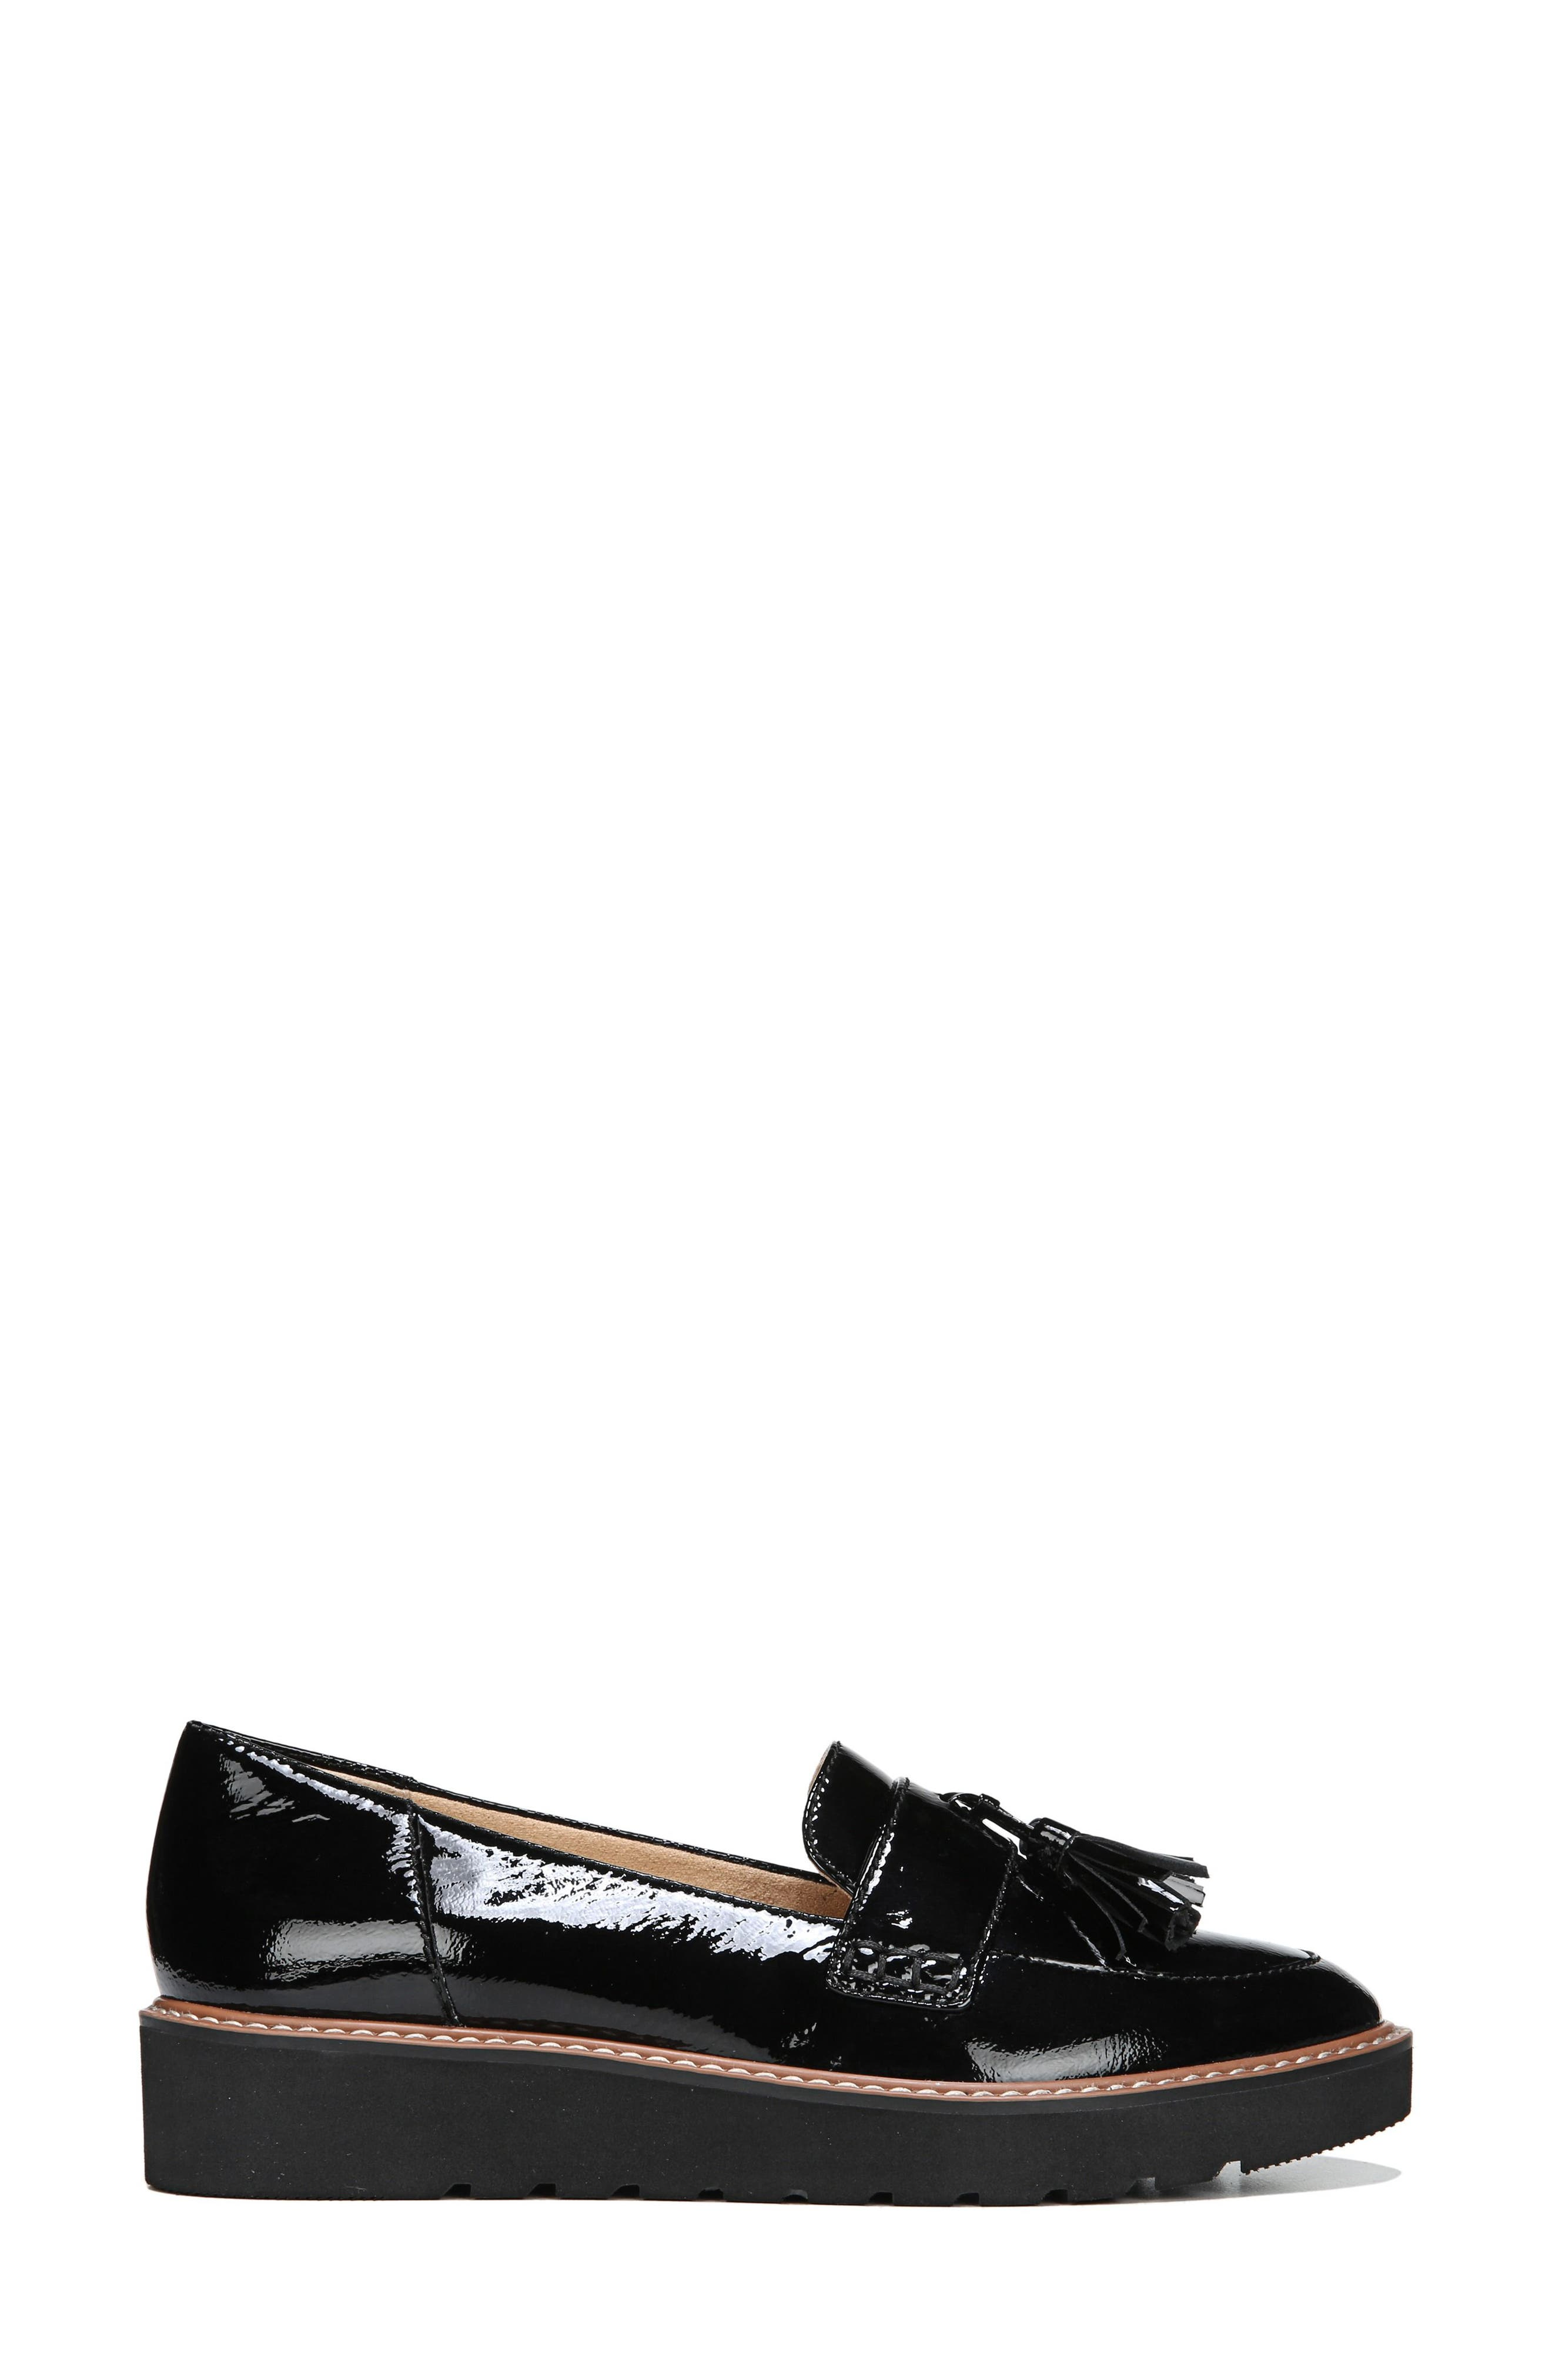 August Loafer,                             Alternate thumbnail 3, color,                             BLACK PATENT LEATHER